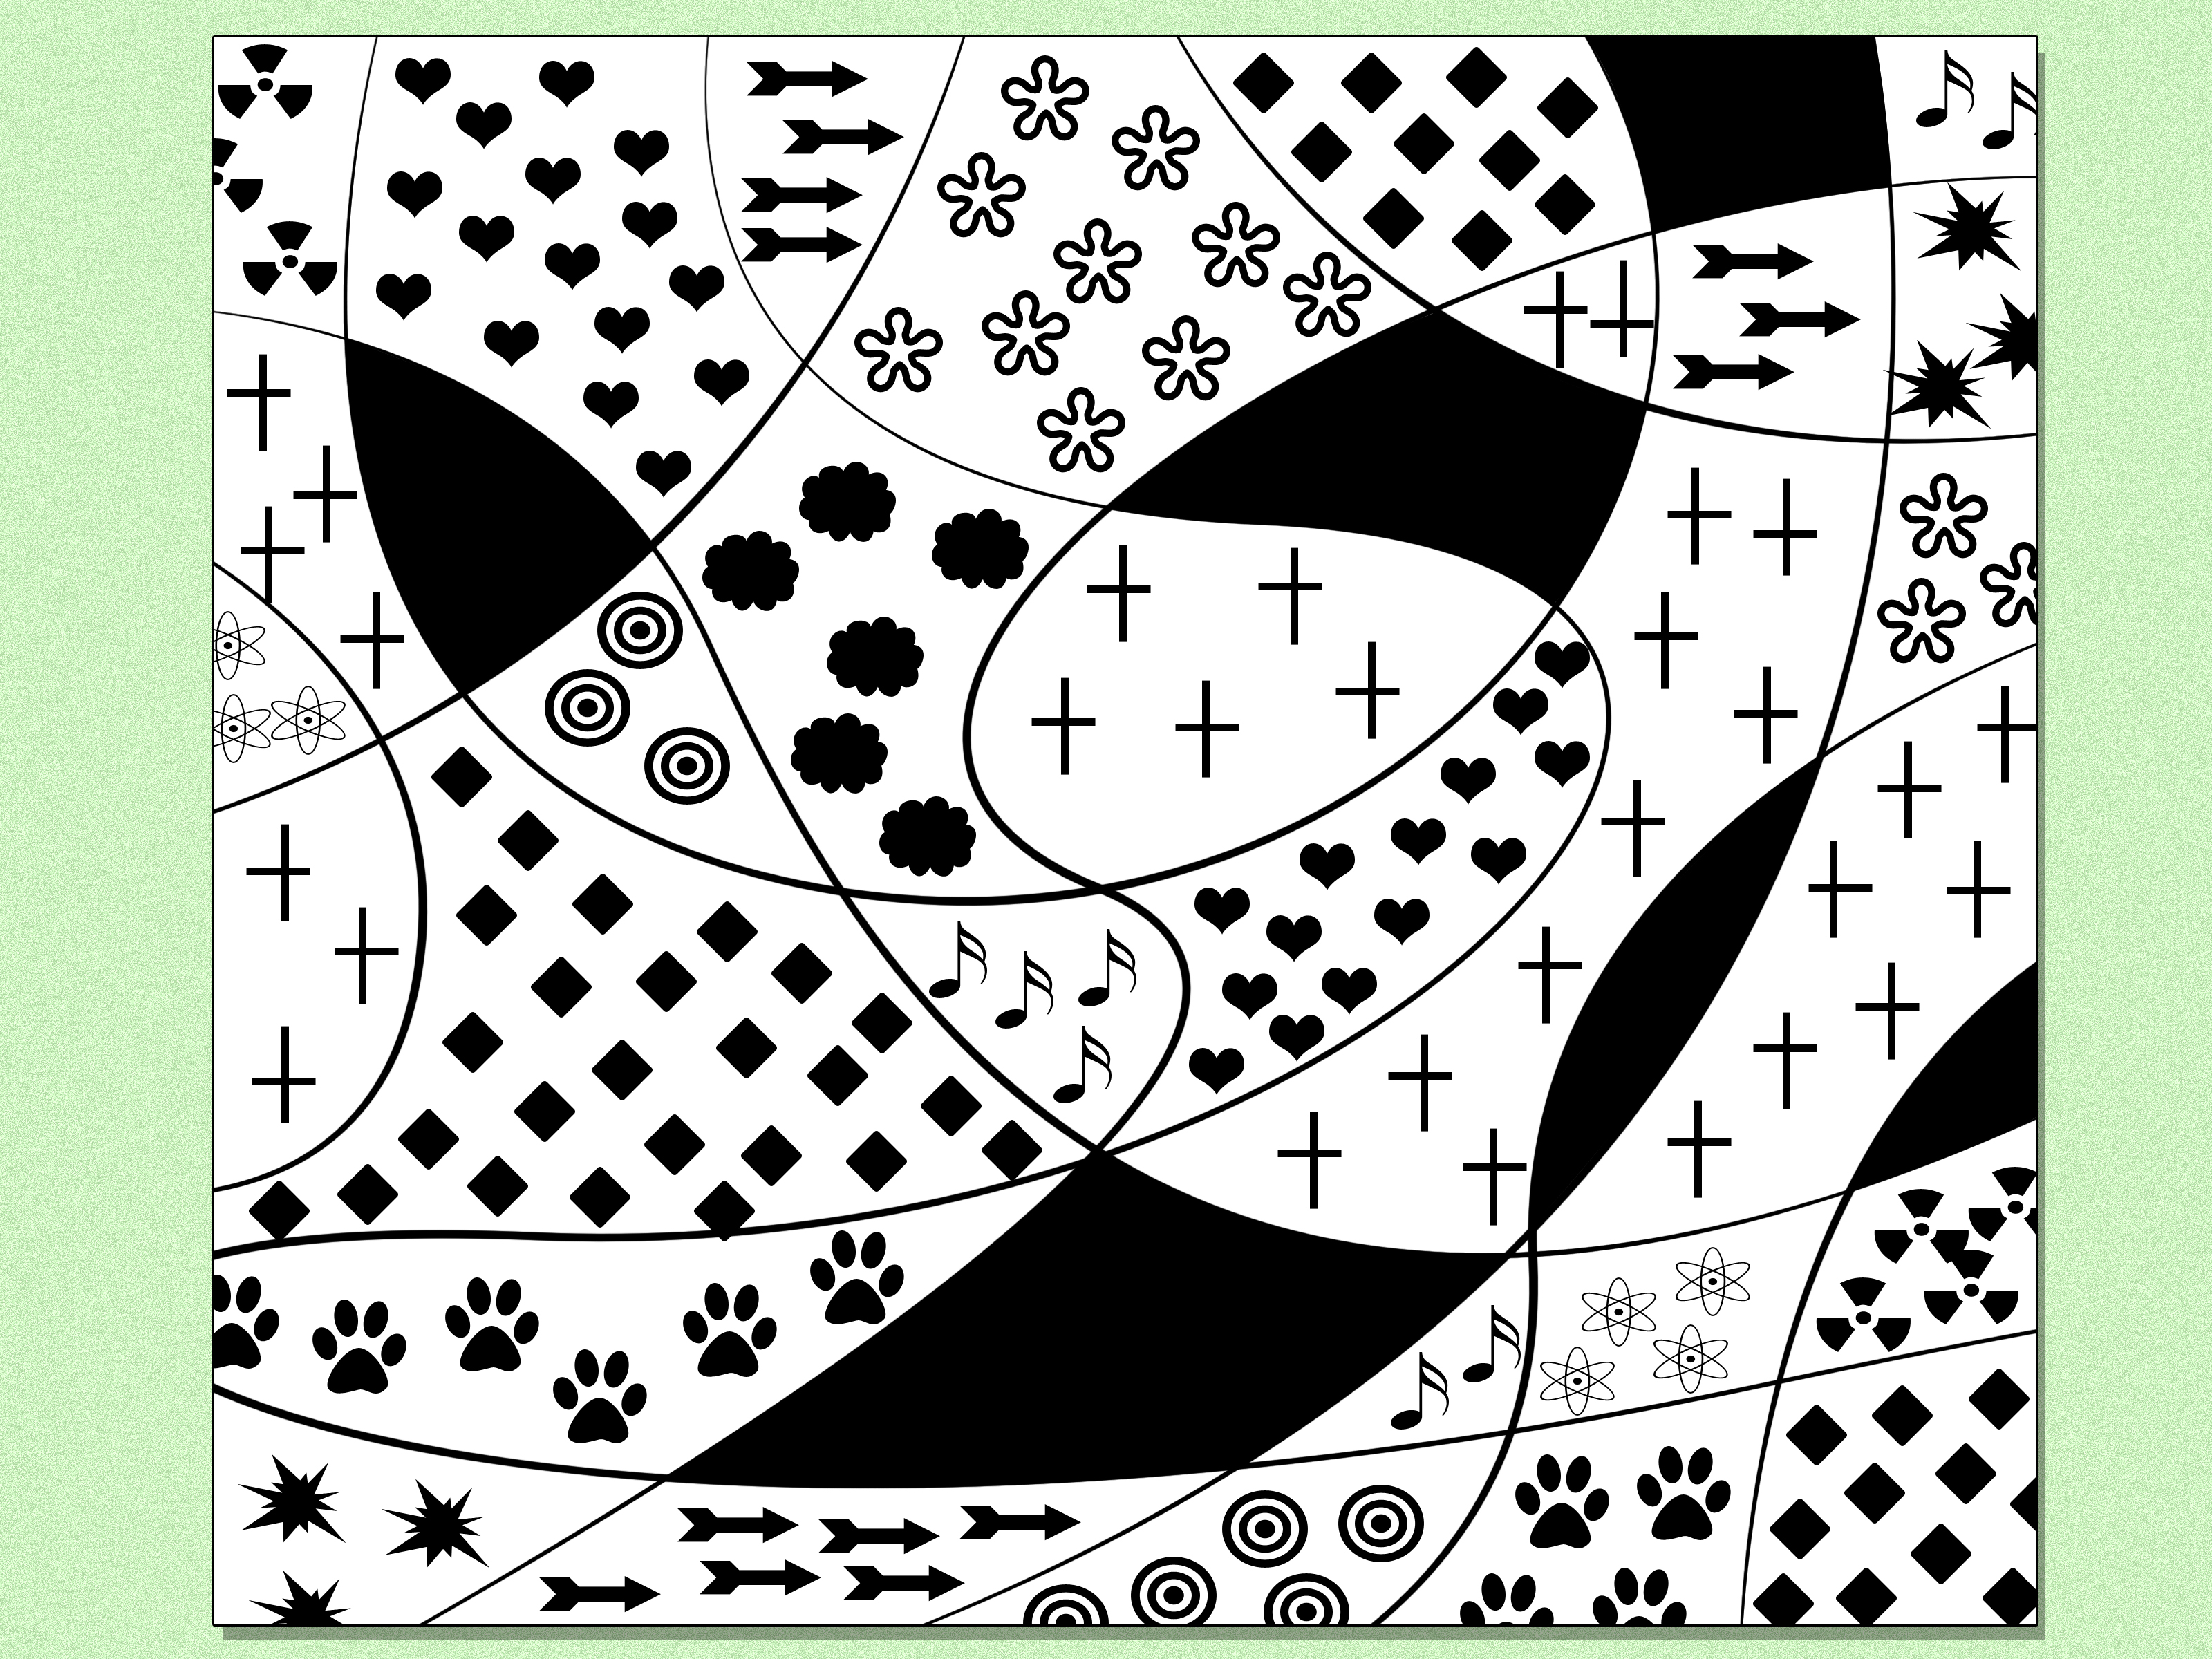 18 abstract designs to draw images cool easy abstract for Cool easy to draw patterns